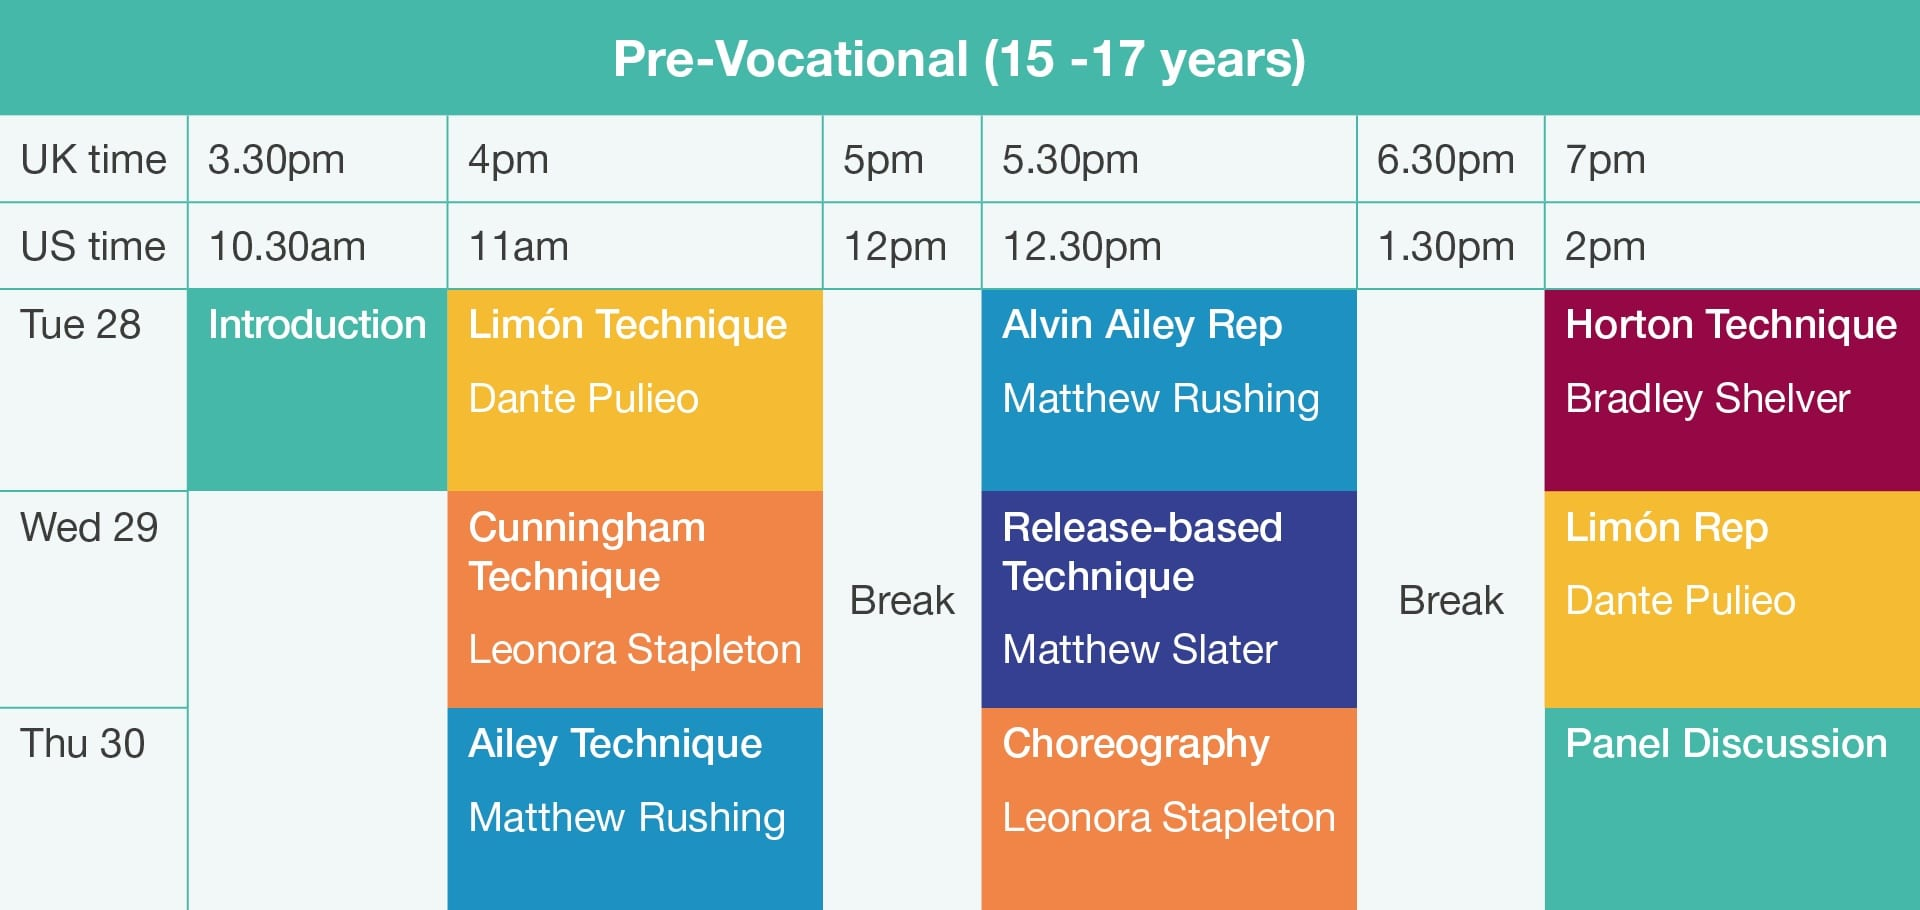 Pre-vocational timetable for students aged 15 to 17 years